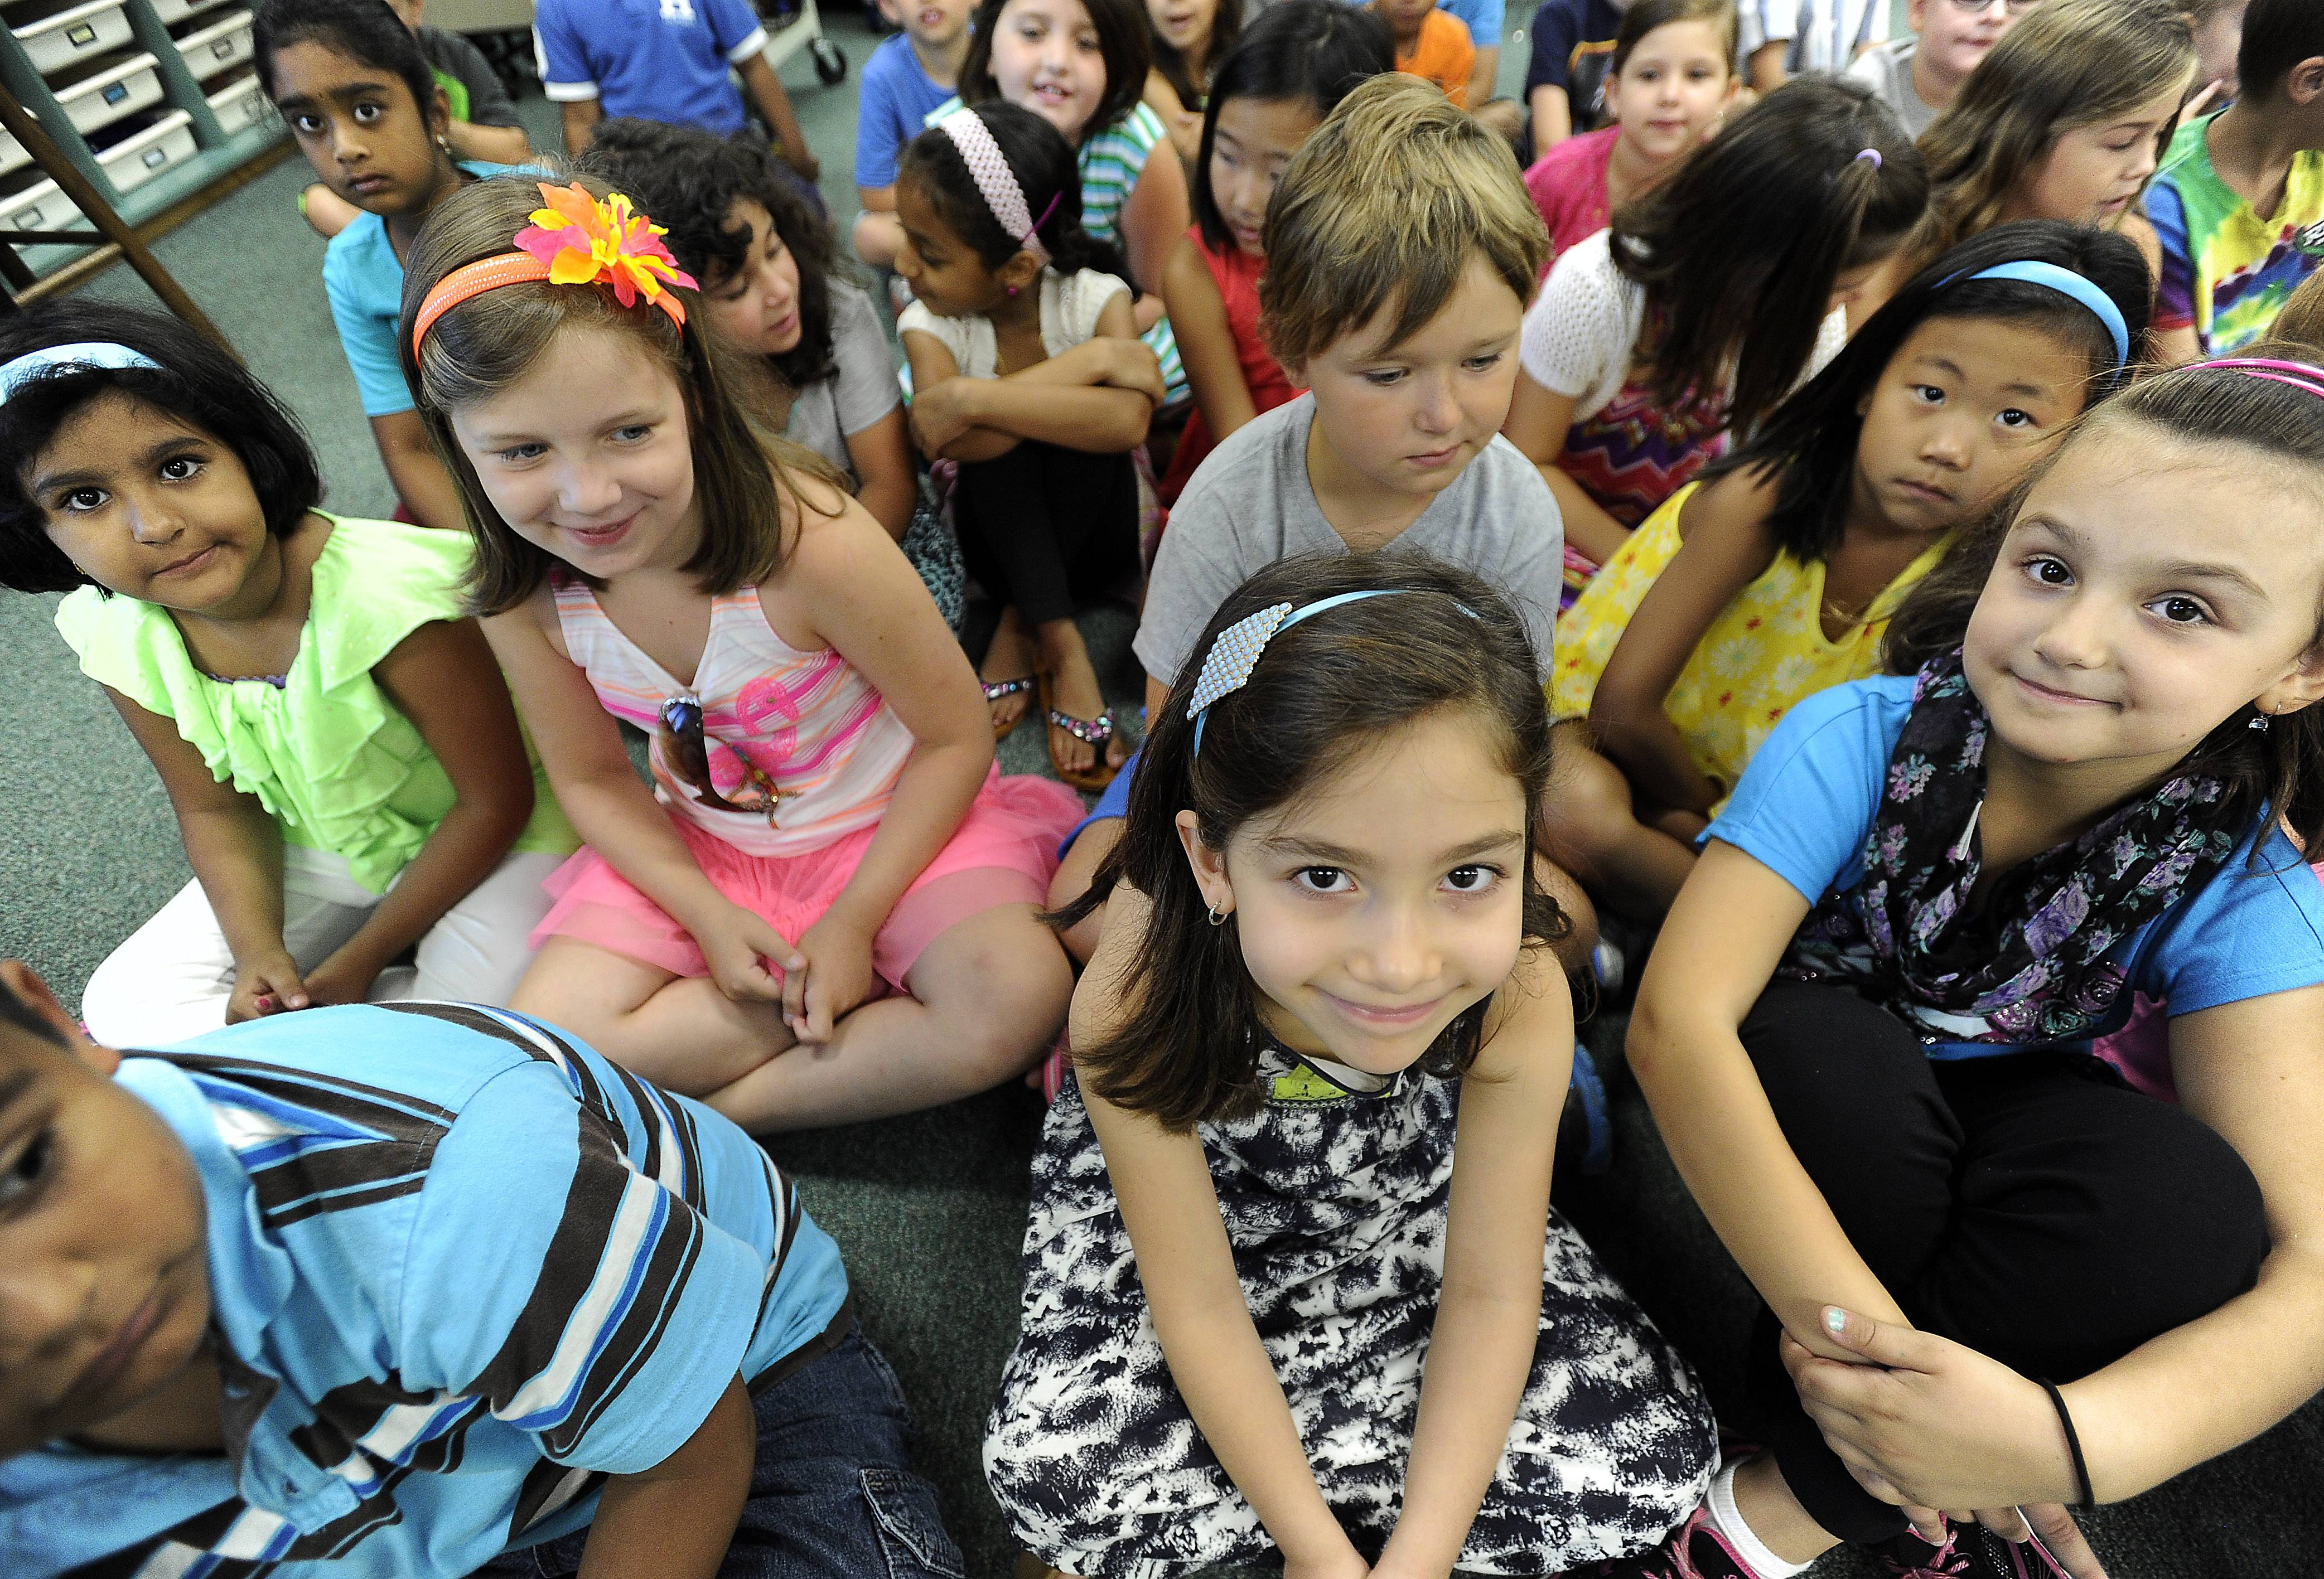 Kaylie Shaya, 7, of Des Plaines, sits with her classmates in teacher Athena Apostolakis' second grade class Wednesday during the first day of school at the Ridge Family Center for Learning in Elk Grove Village.